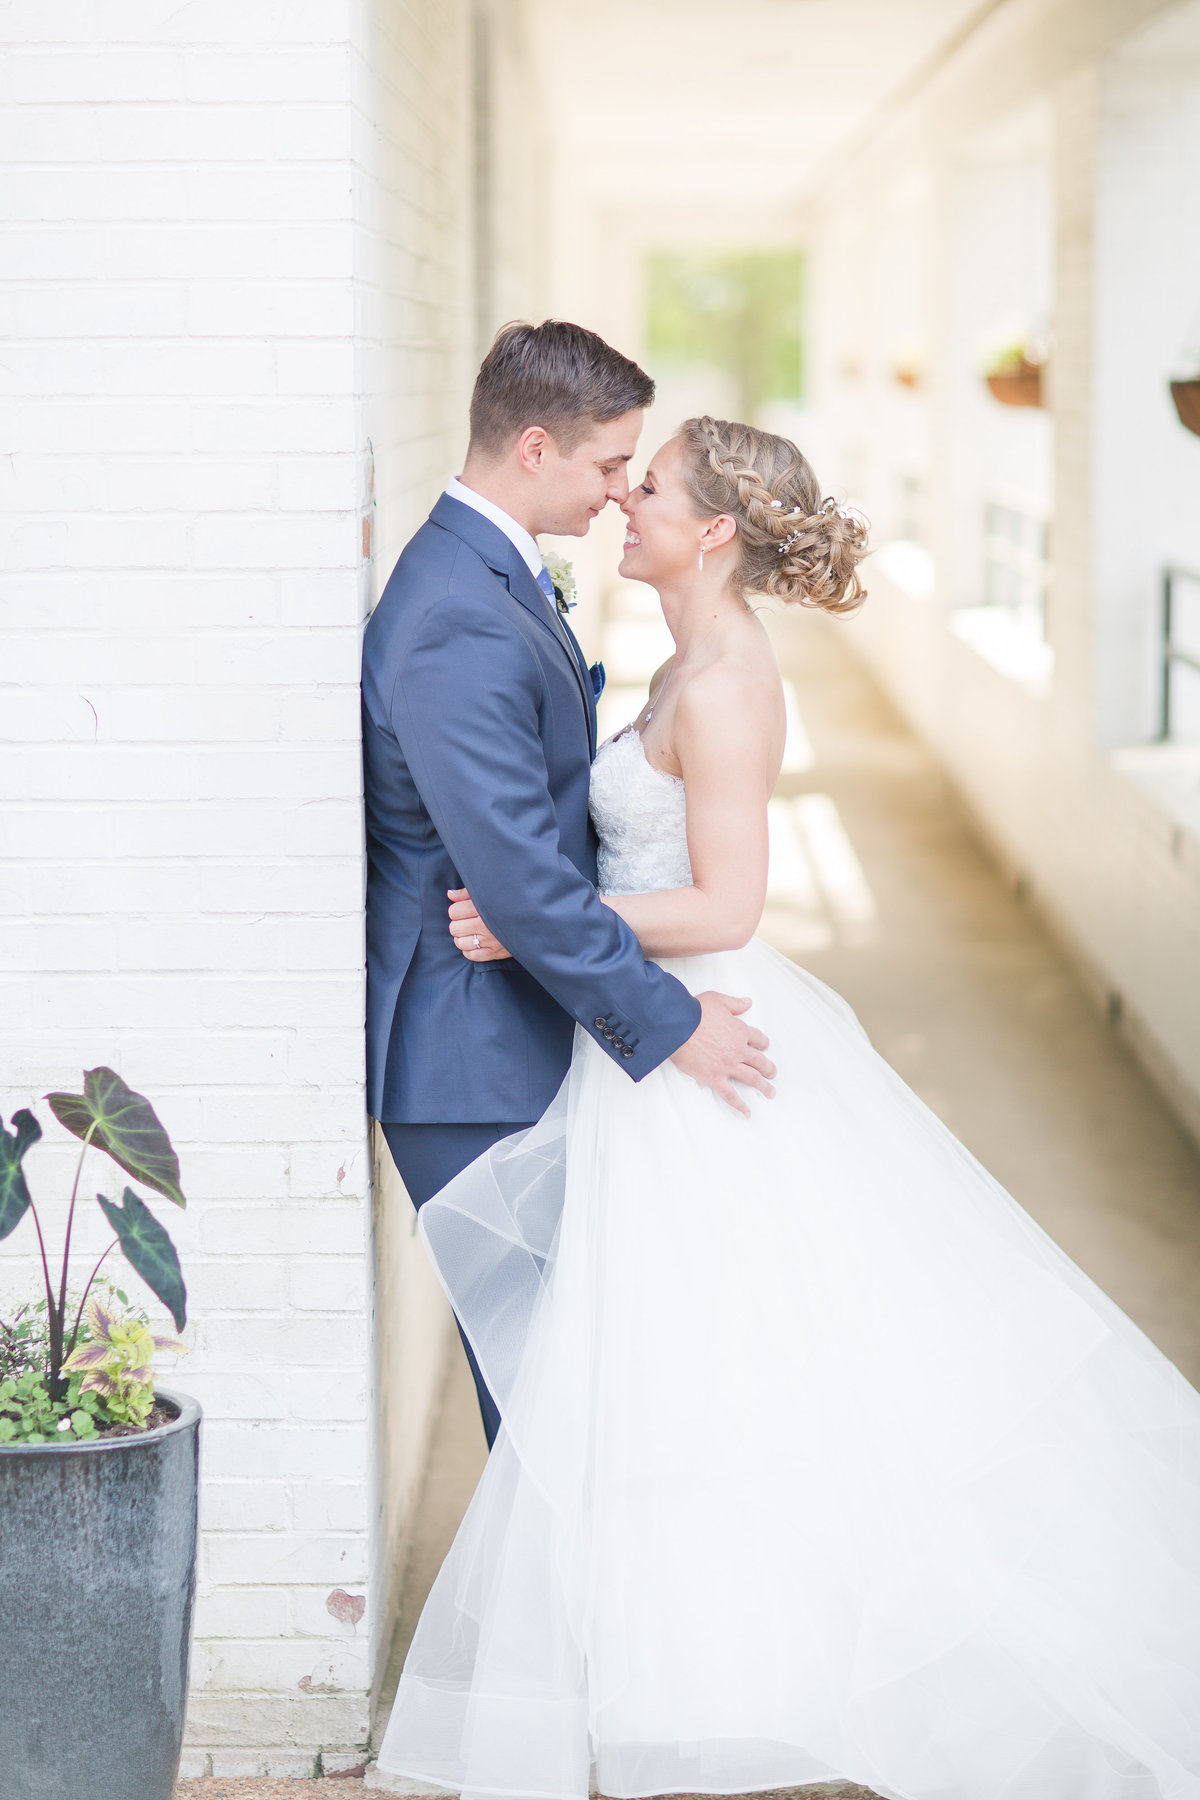 Spring wedding in Newport News, Virginia